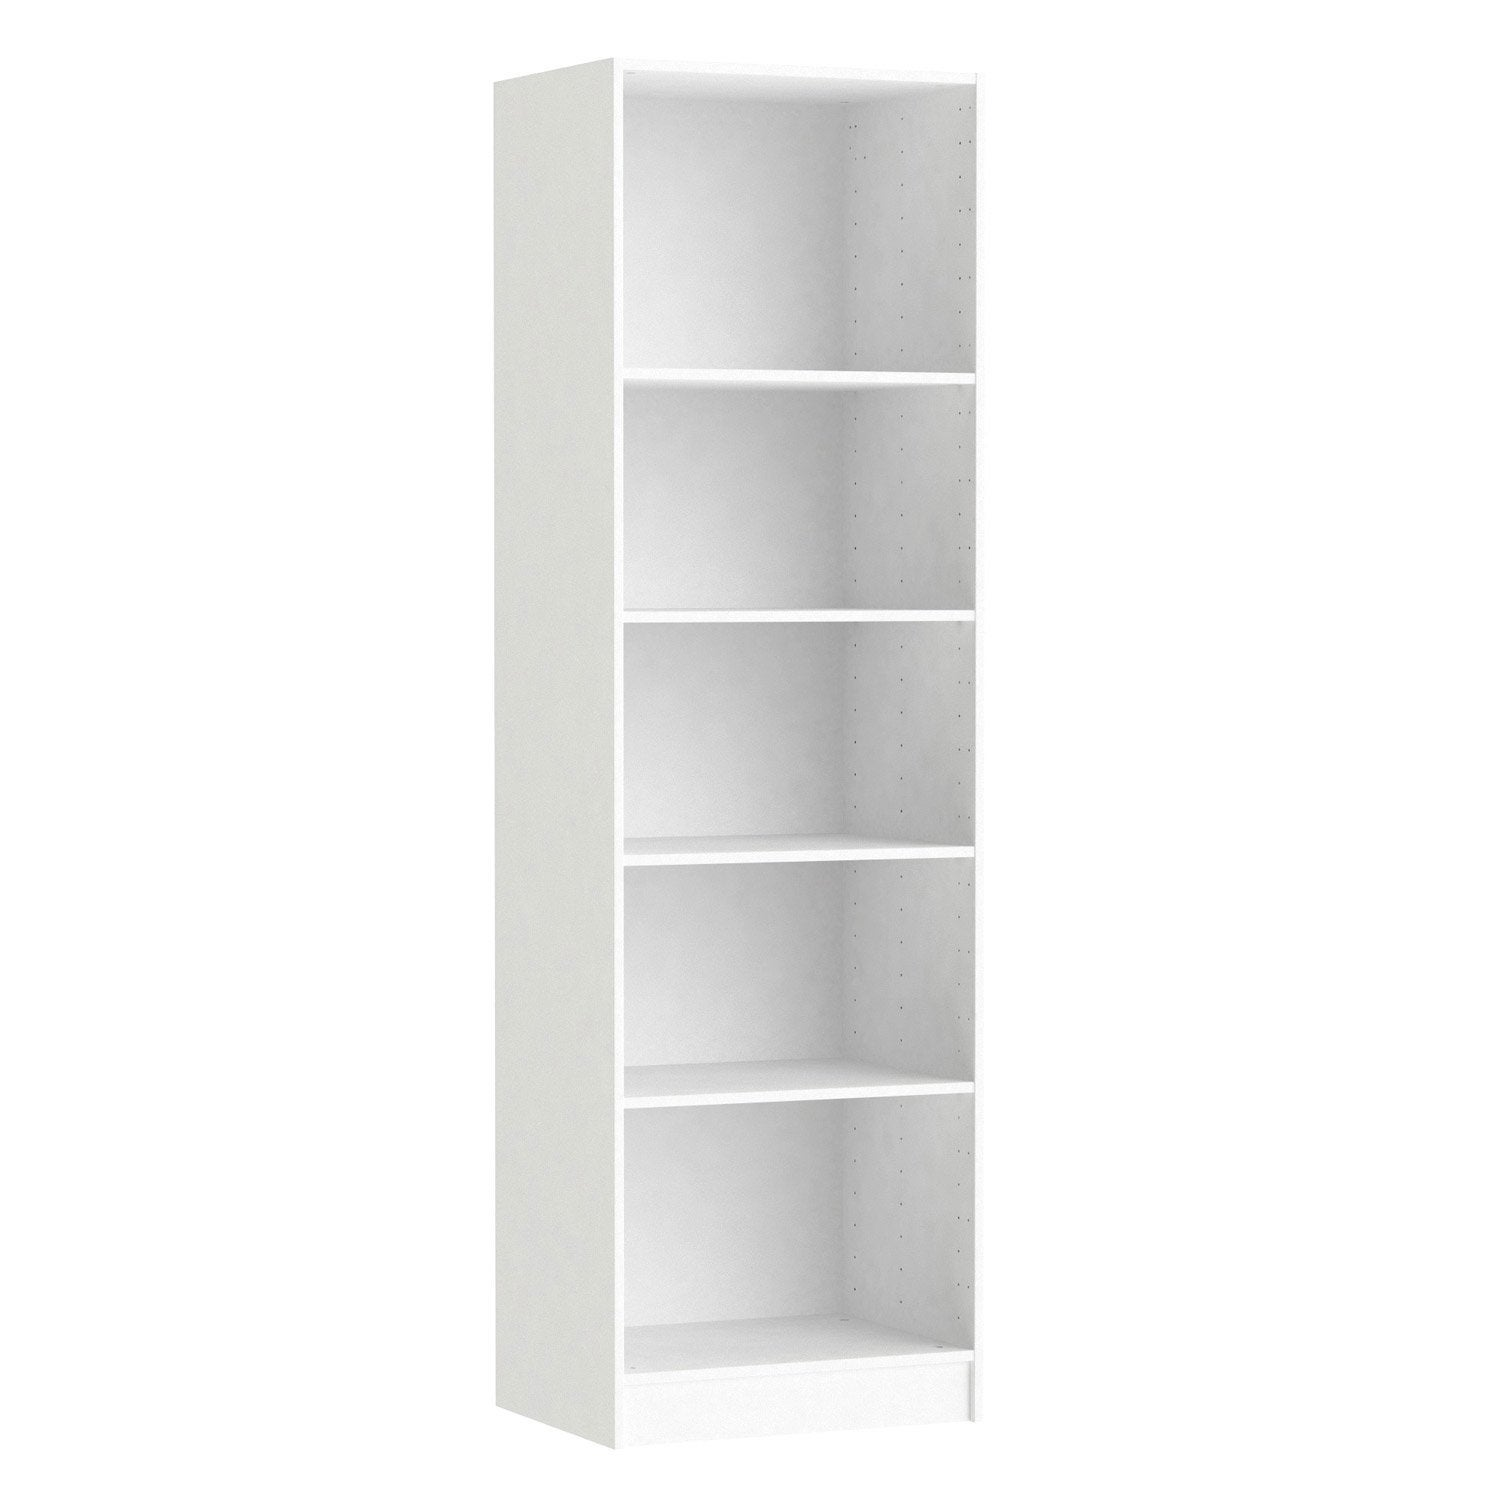 Caisson spaceo home 200 x 60 x 45 cm blanc leroy merlin - Amenagement placard chambre ikea ...